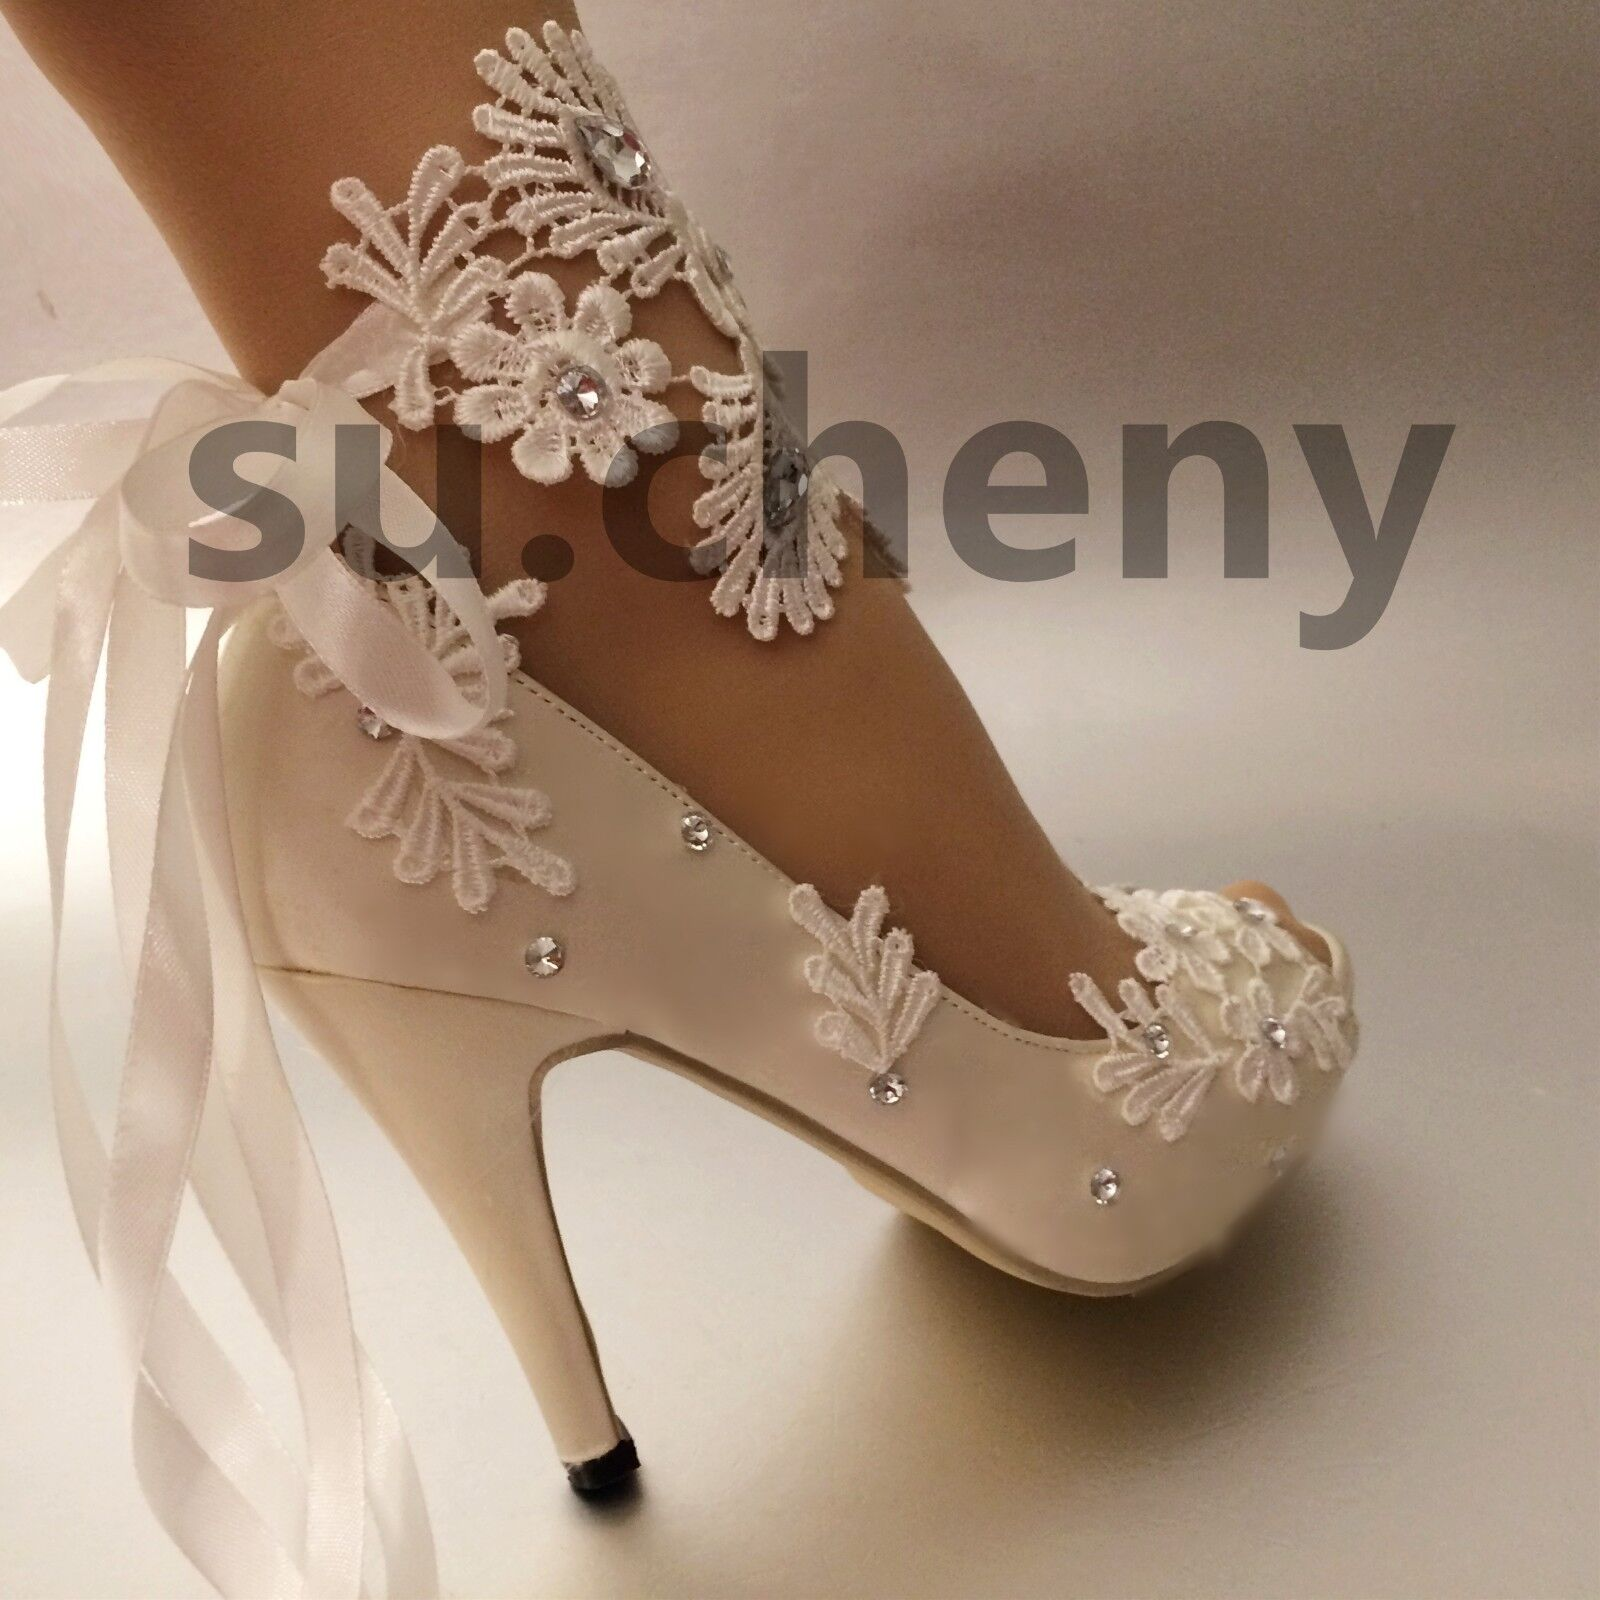 "3de1a40cd268be su.cheny 3  4"" heel white ivory satin lace ribbo.. in Clothing ..."